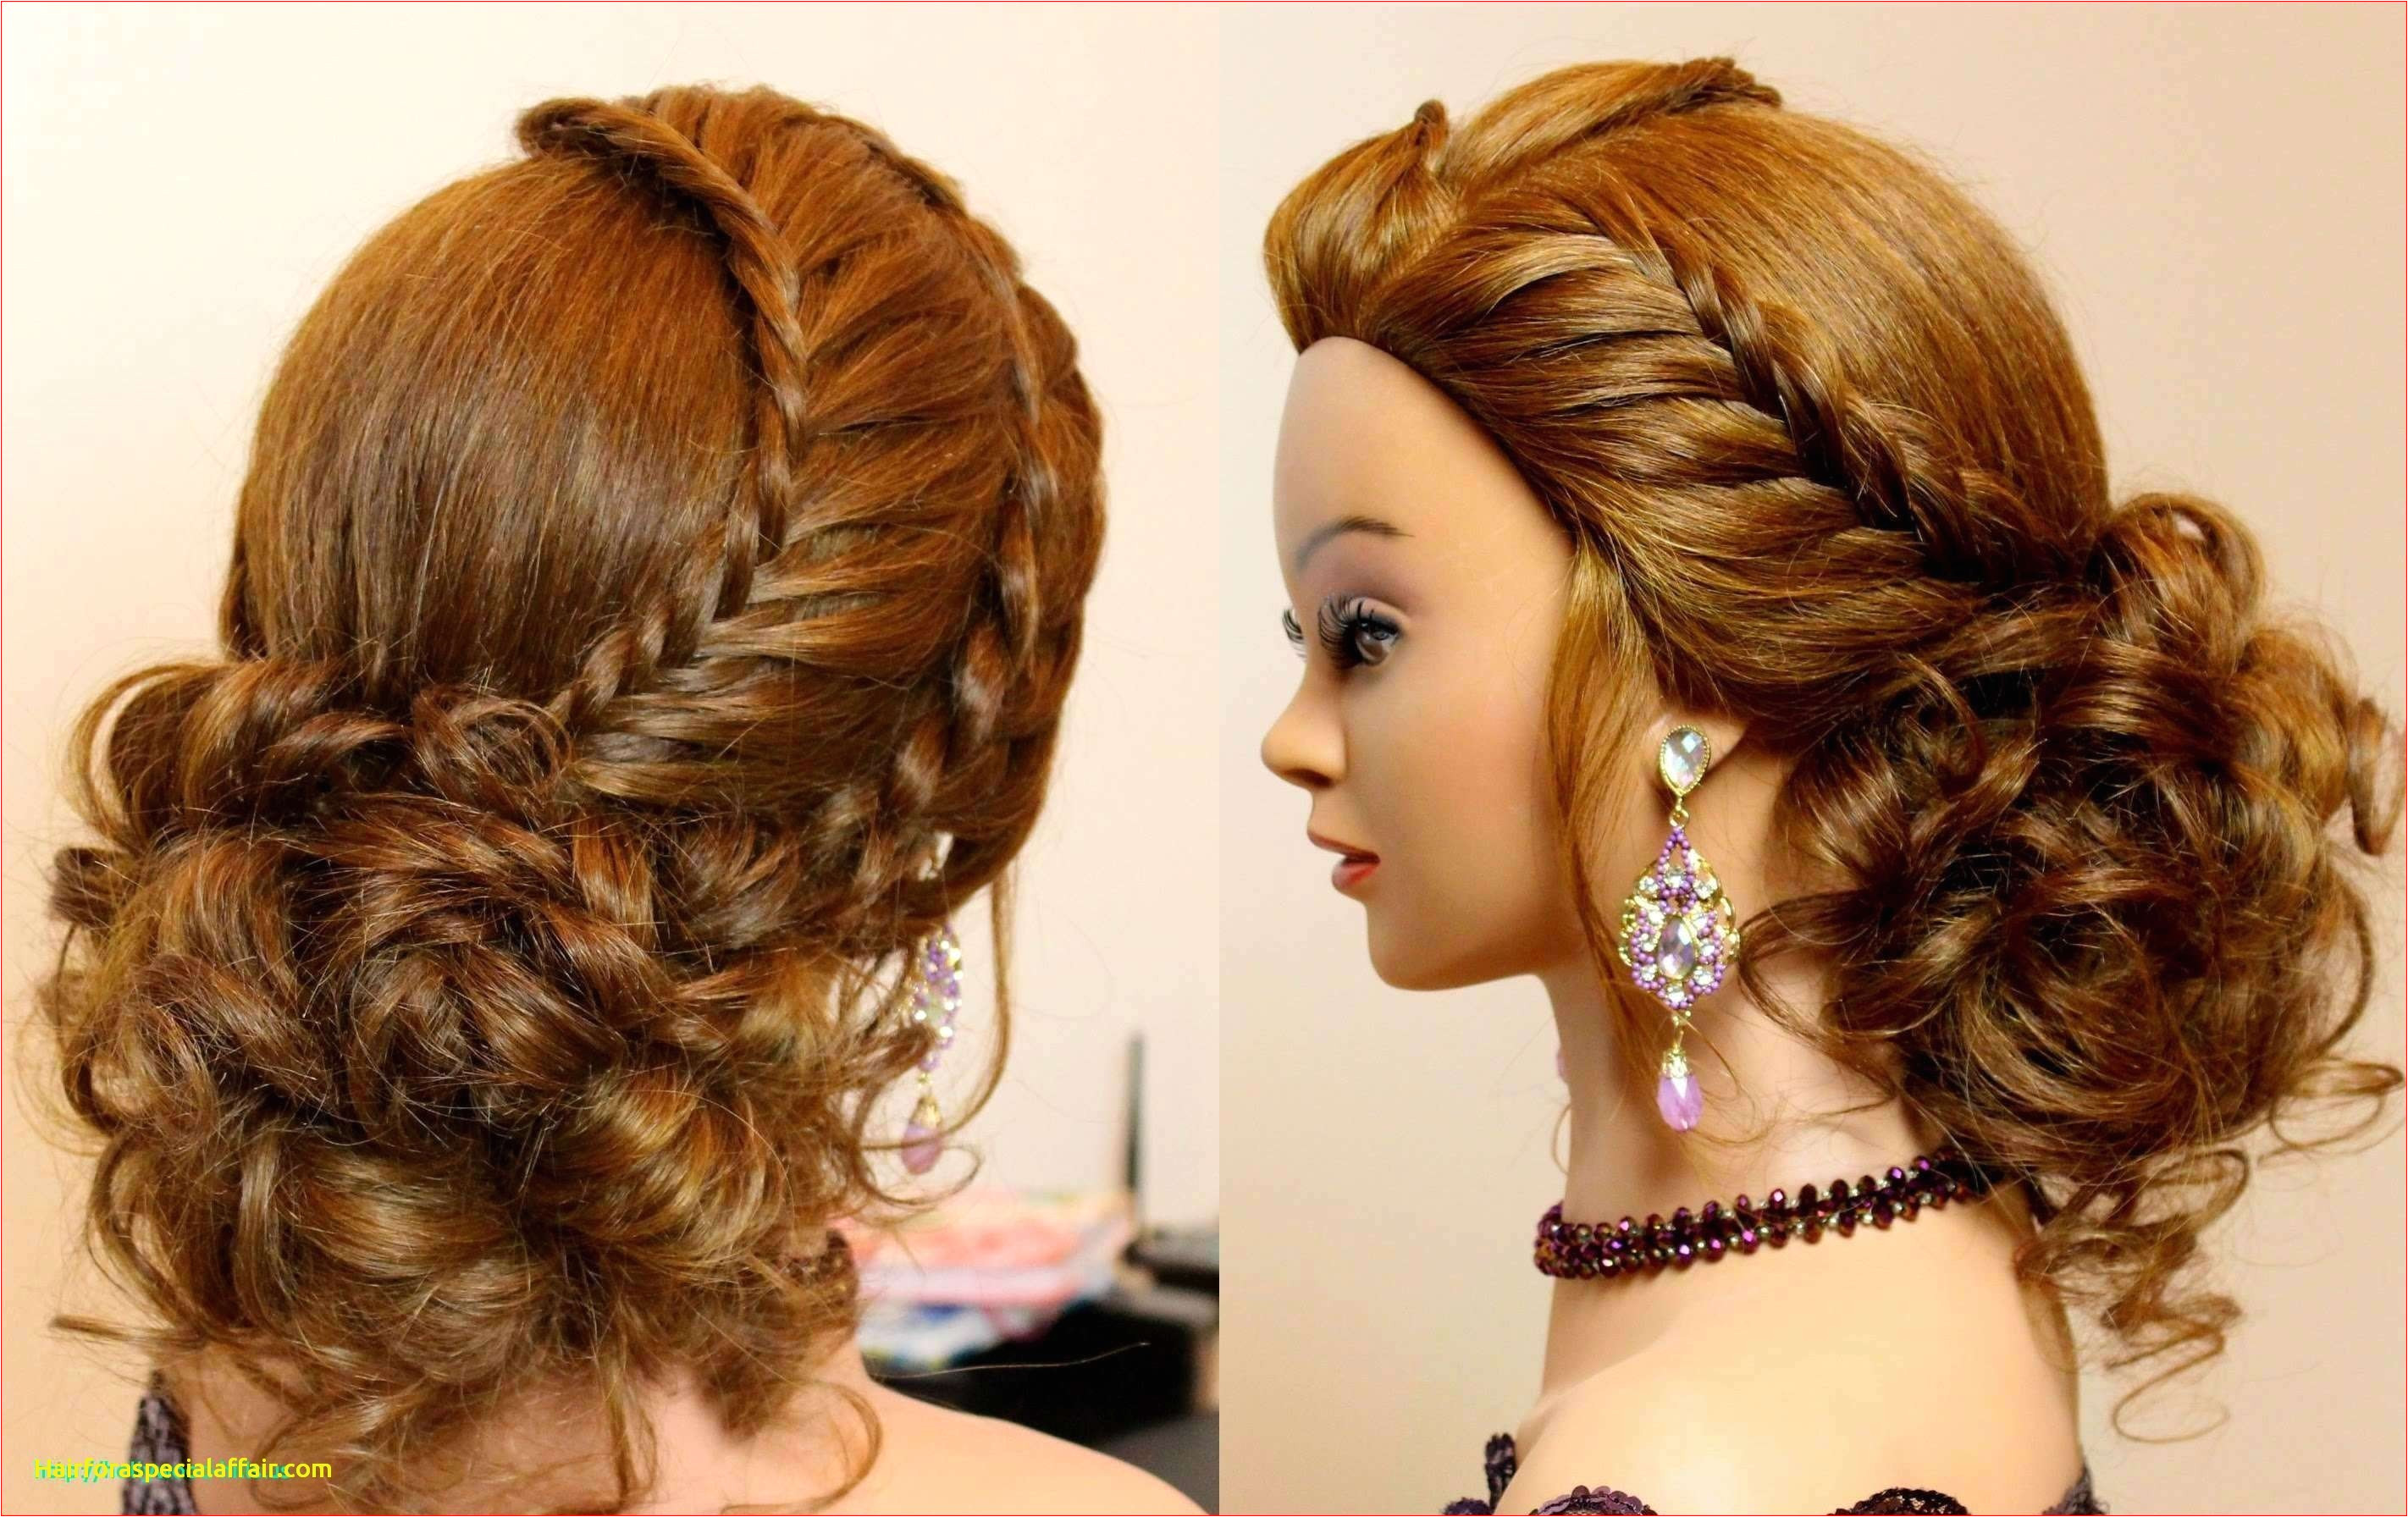 Elegant Hairstyles for evening Wear Luxury New Elegant evening Hairstyles for Long Hair Awesome Haircuts 0d Fresh Easy formal Hairstyles for Long Hair Step